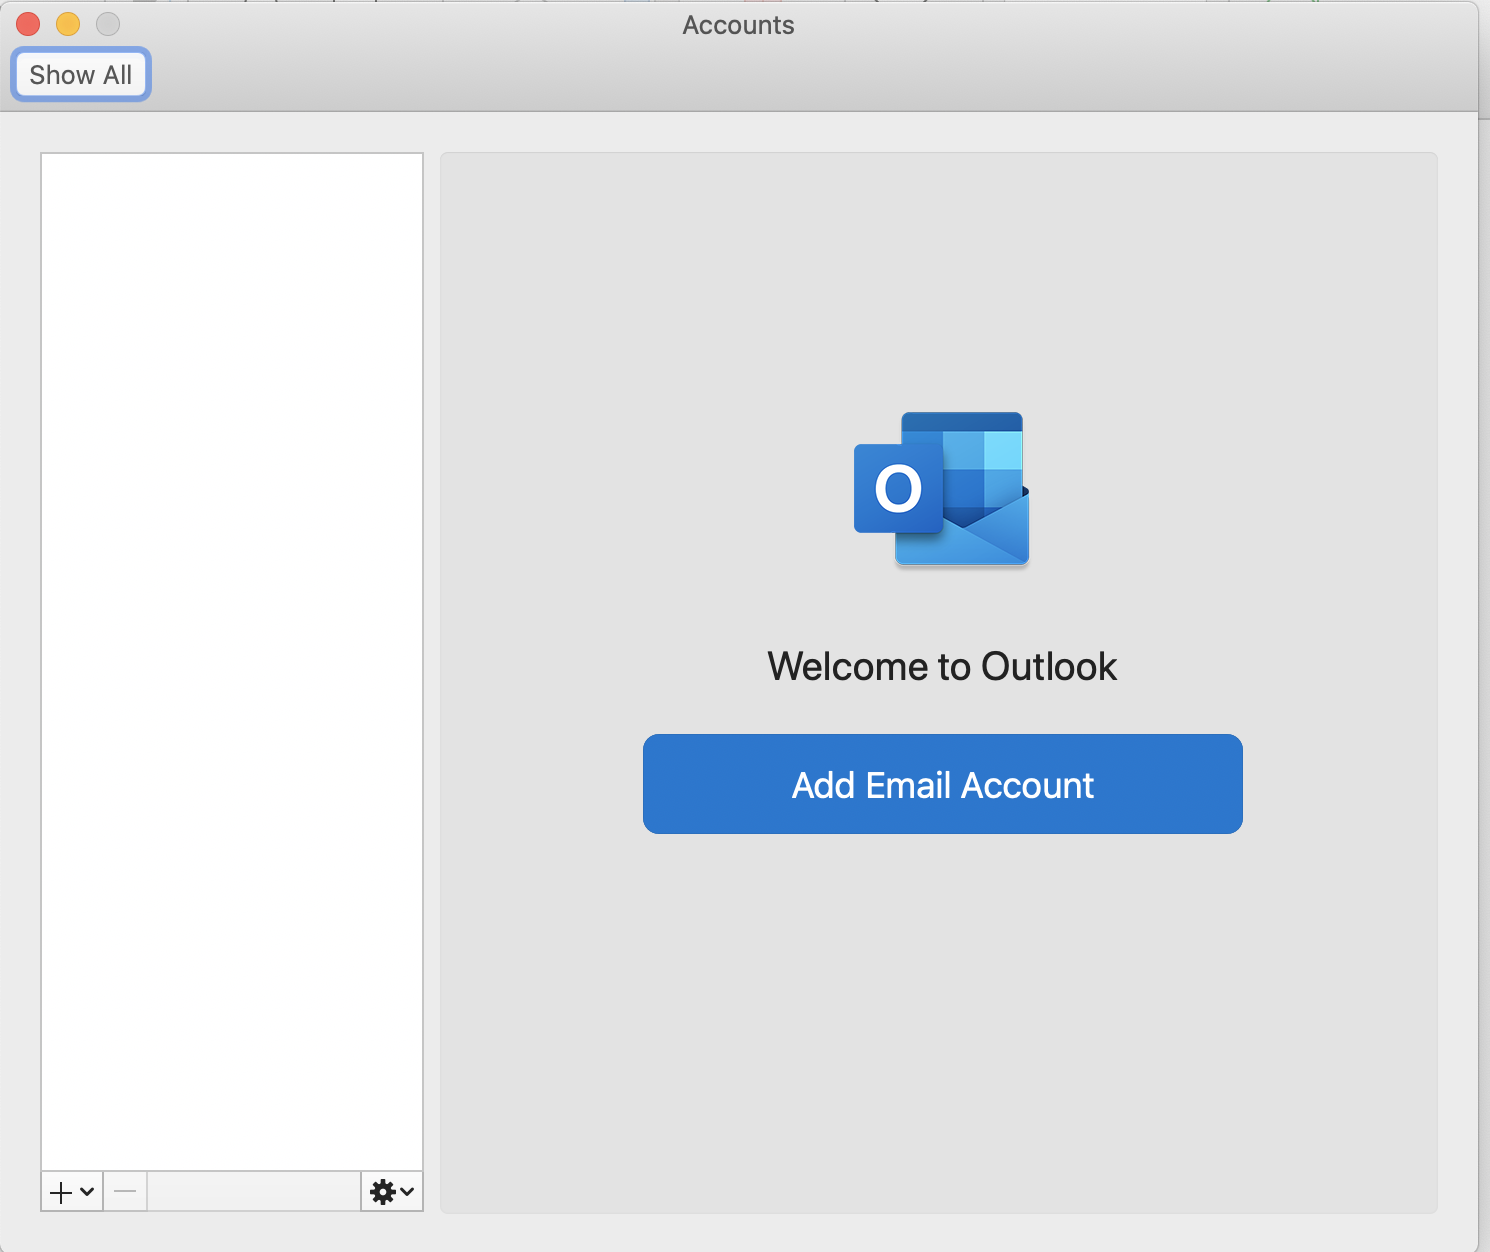 Adding a new account in Outlook for macOS